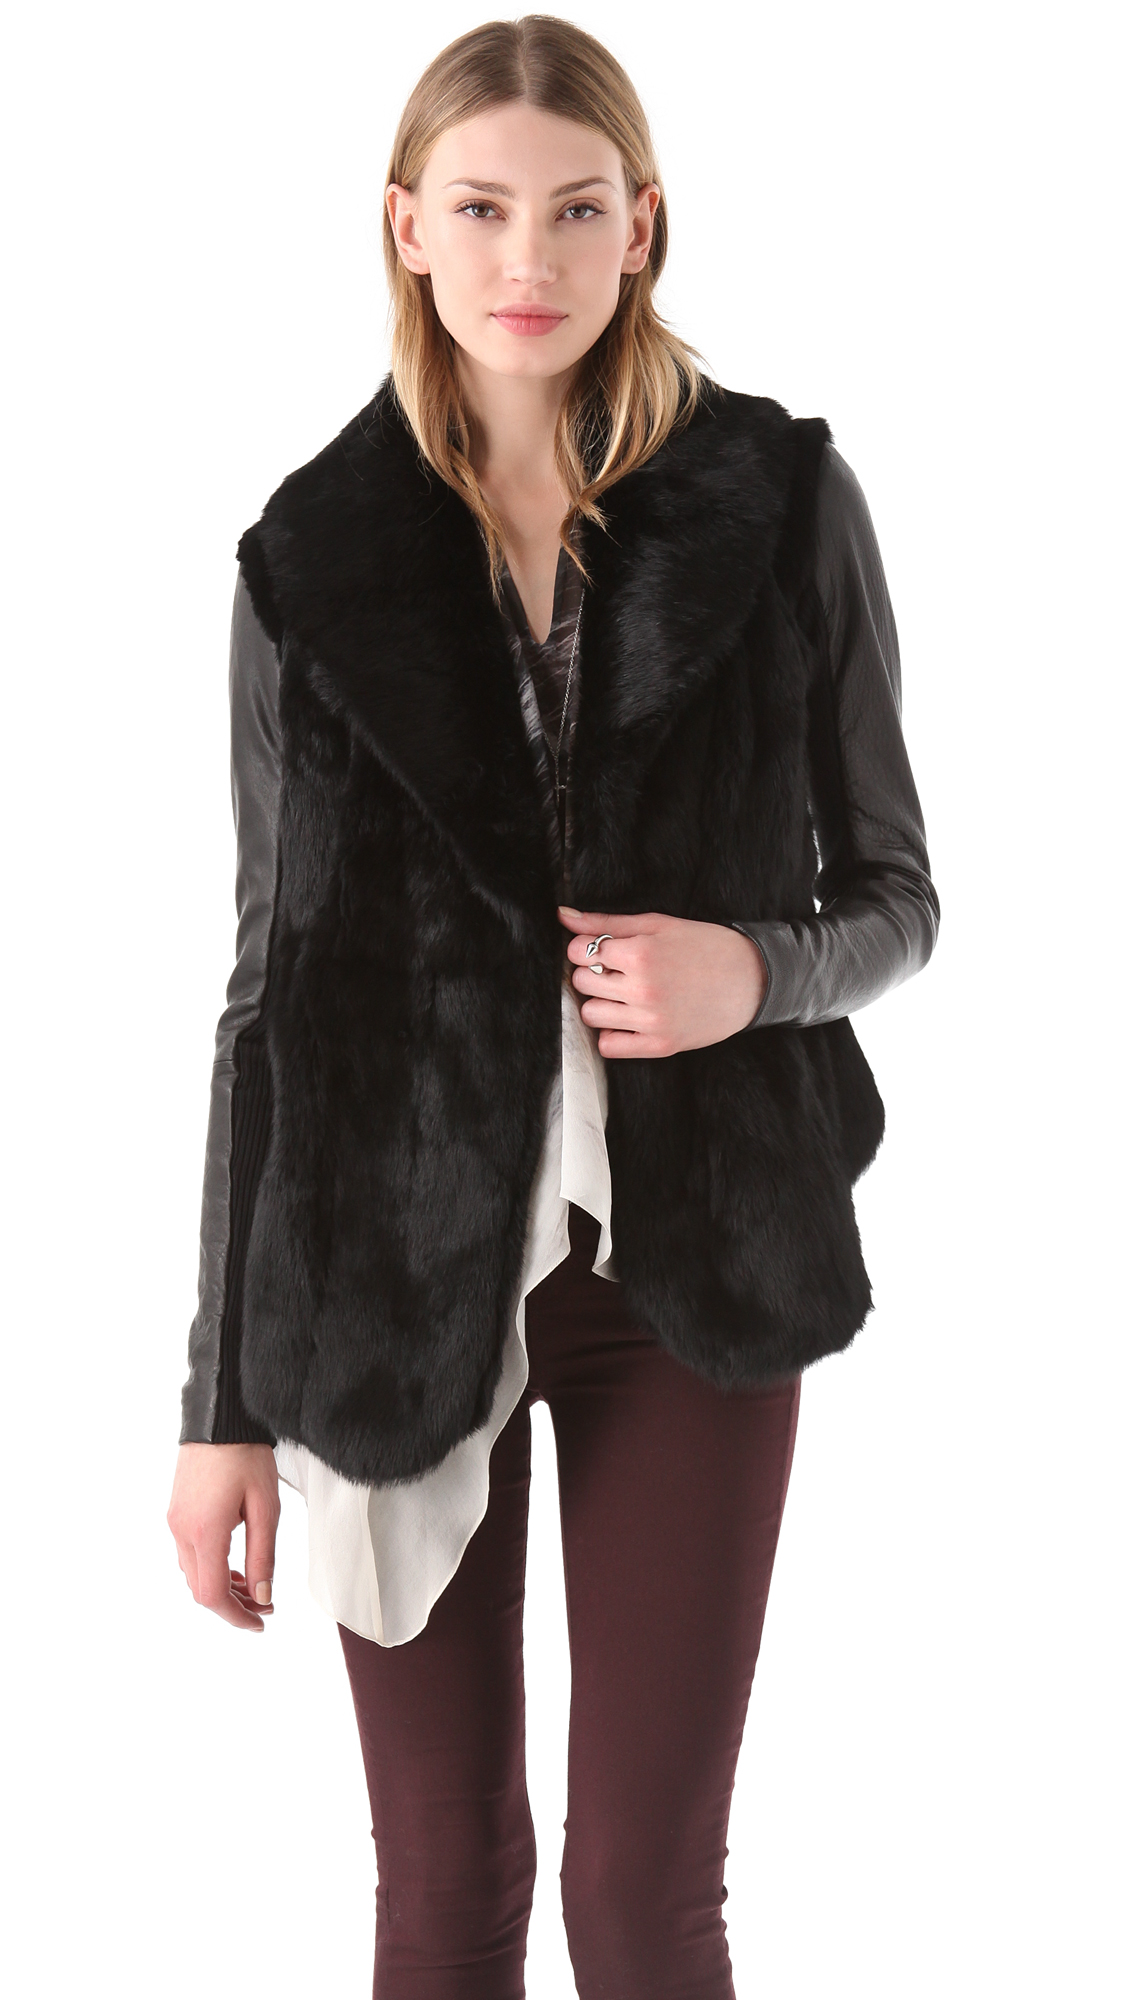 Fur Coat With Leather Sleeves - Coat Nj